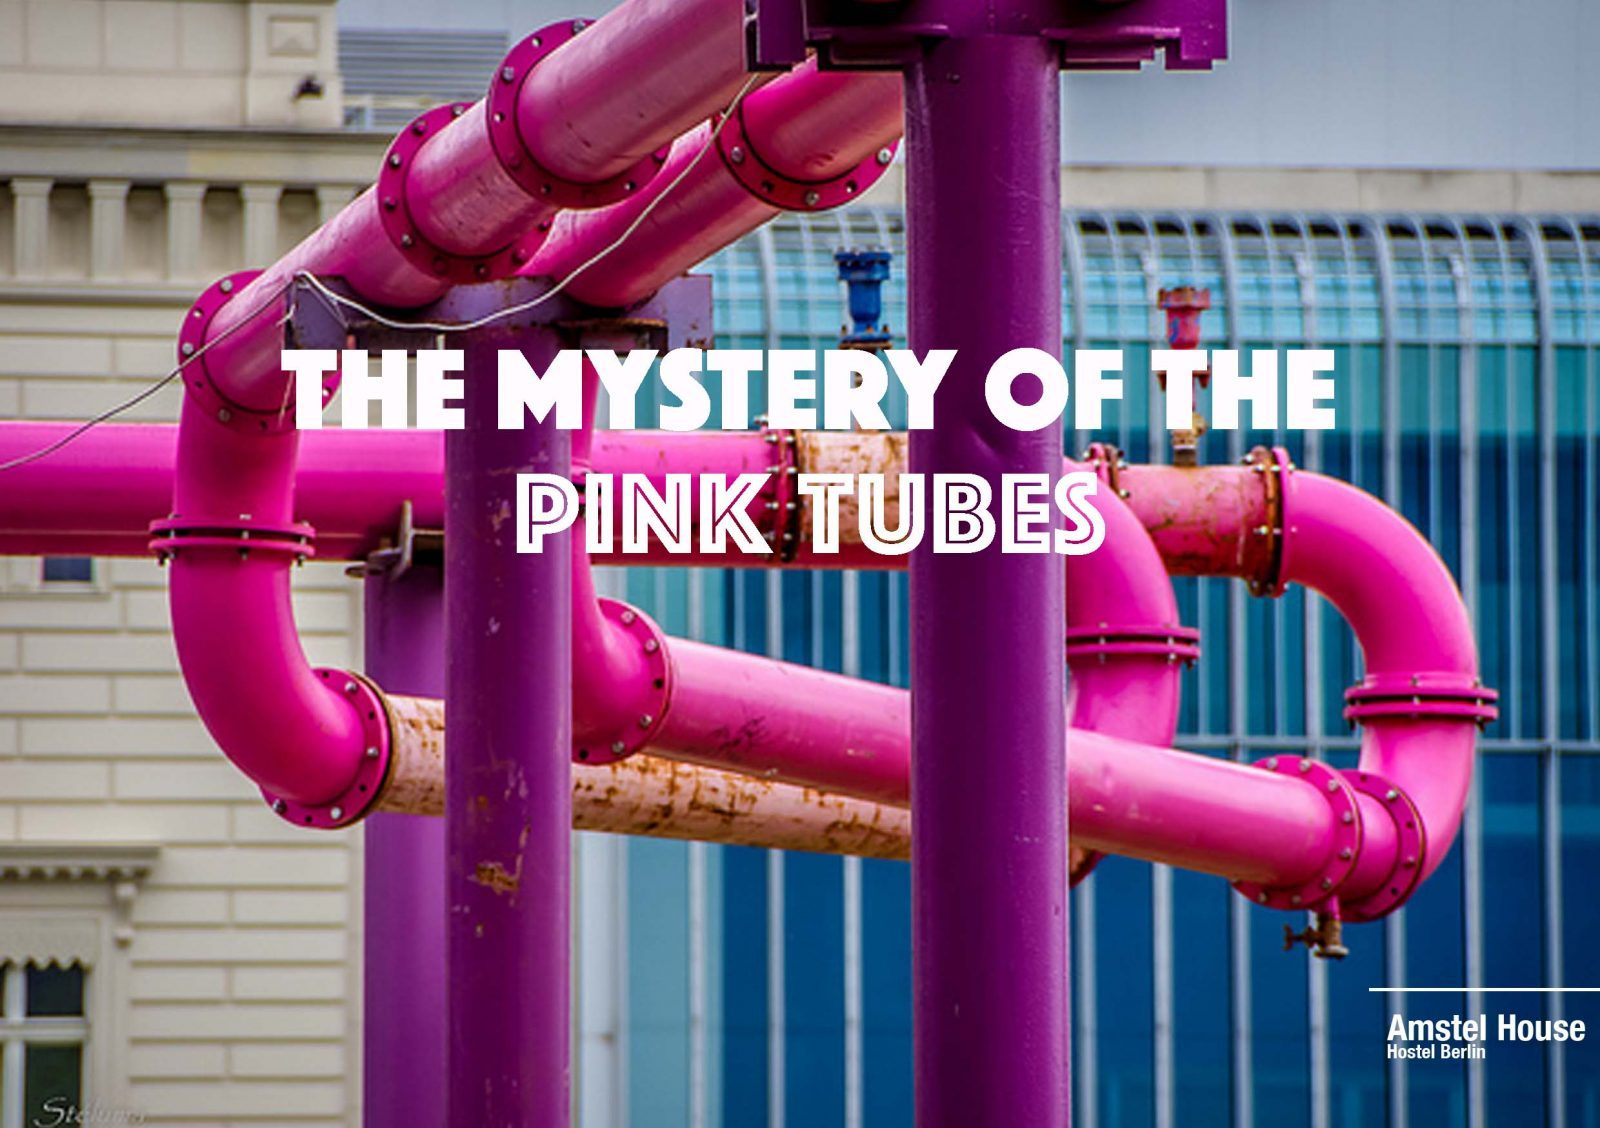 Berlin pink pipes - the mystery of the pink tubes in Berlin